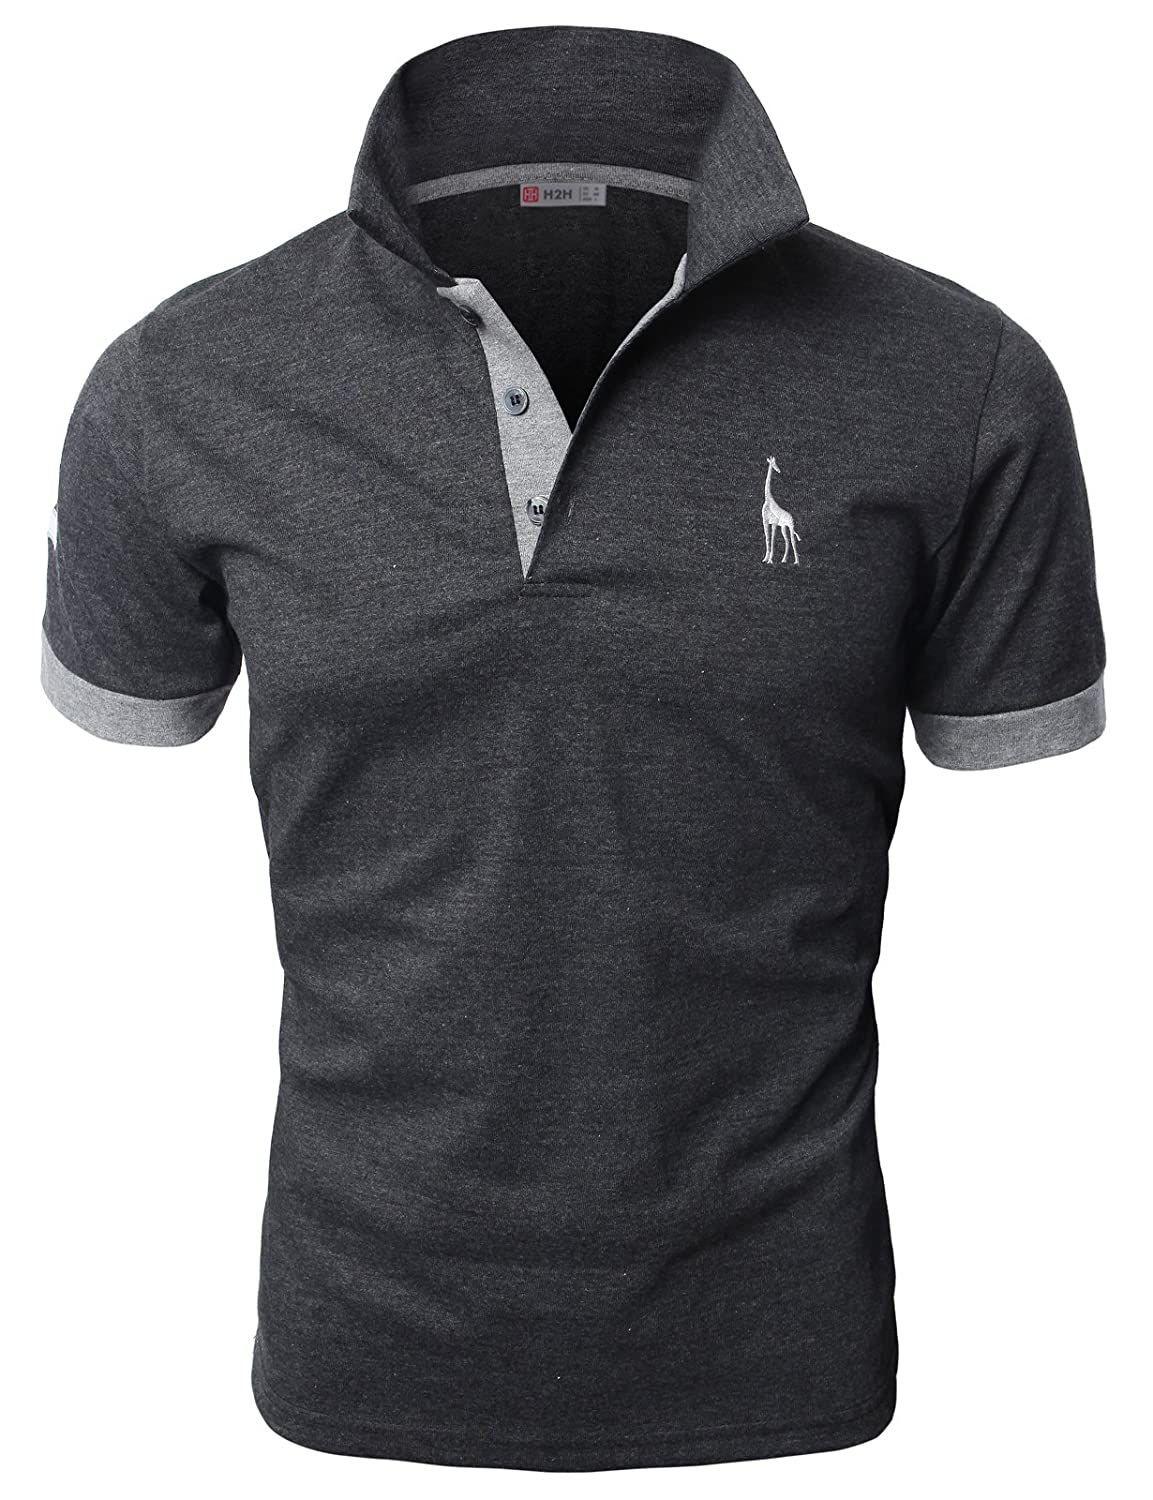 H2h Mens Casual Slim Fit Polo T Shirts Basic Designed With Giraffe